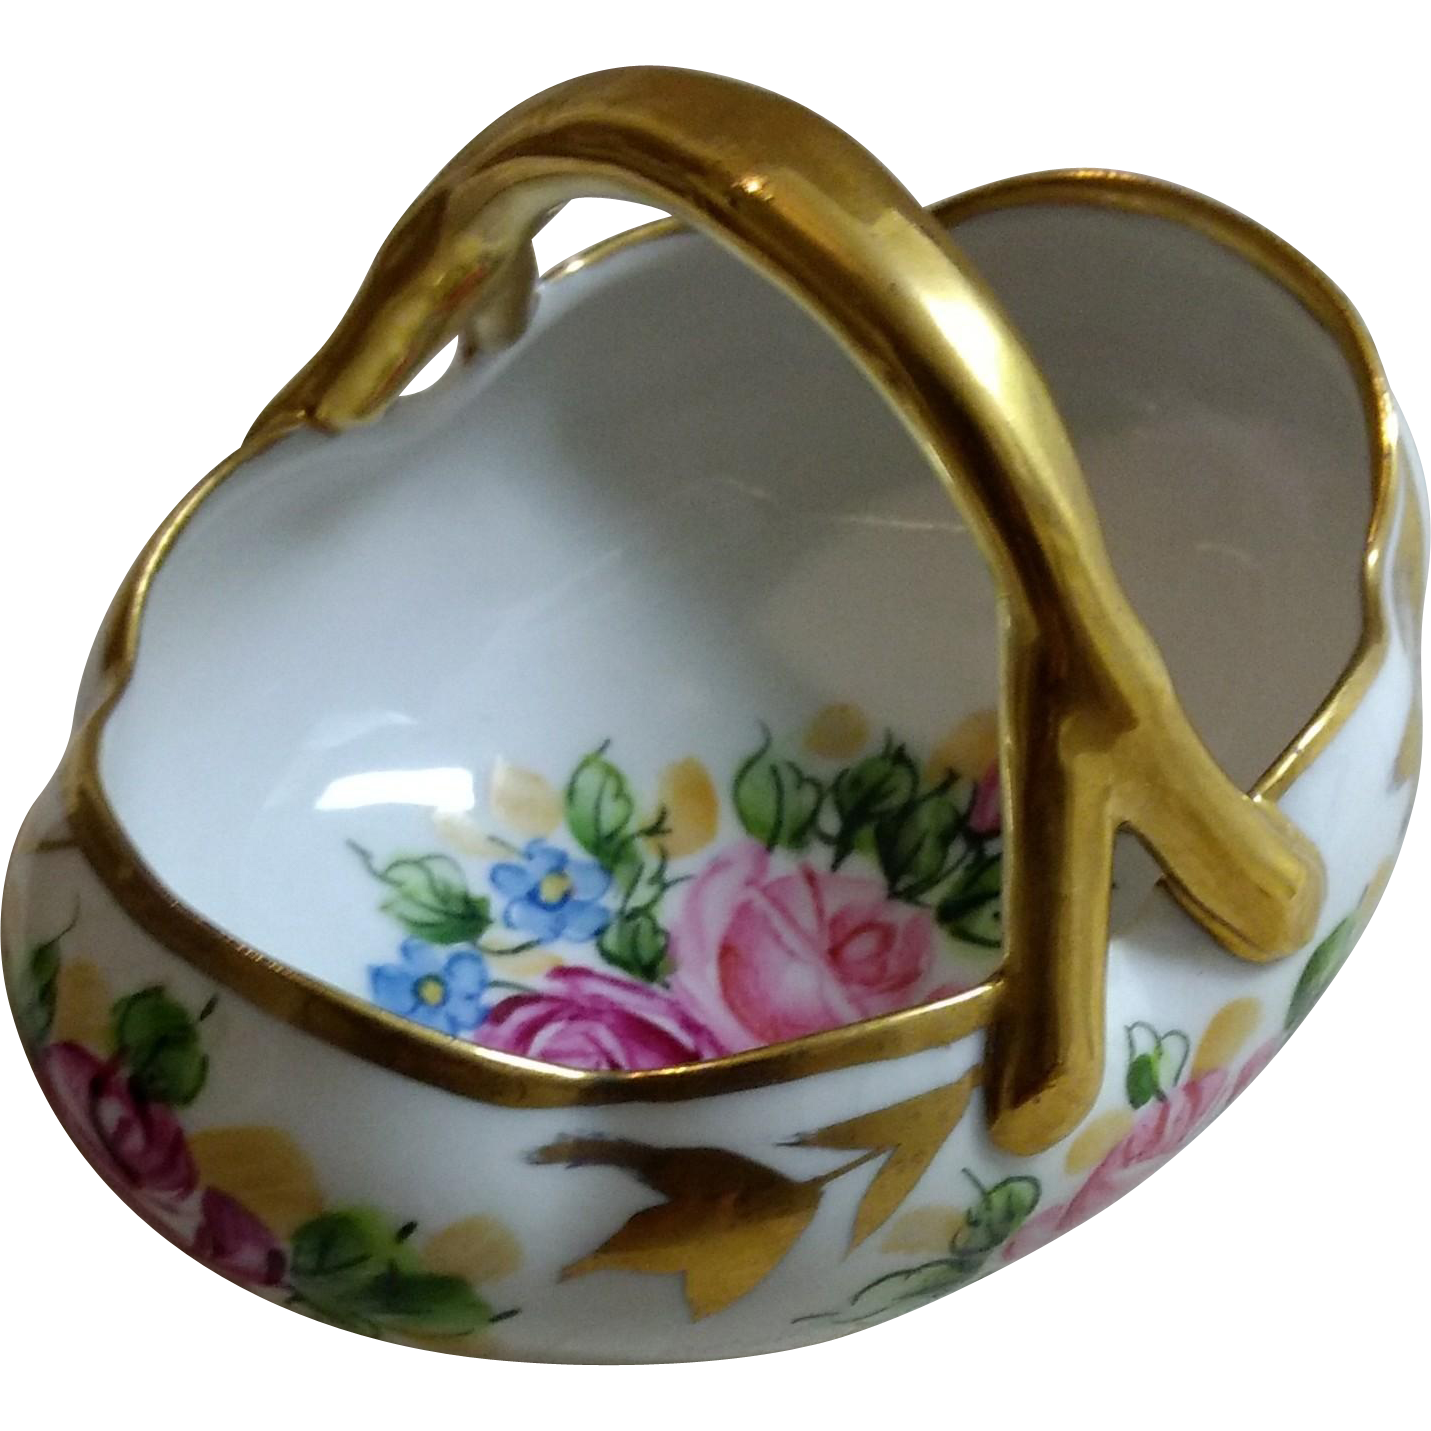 Signed Limoges Porcelain Basket